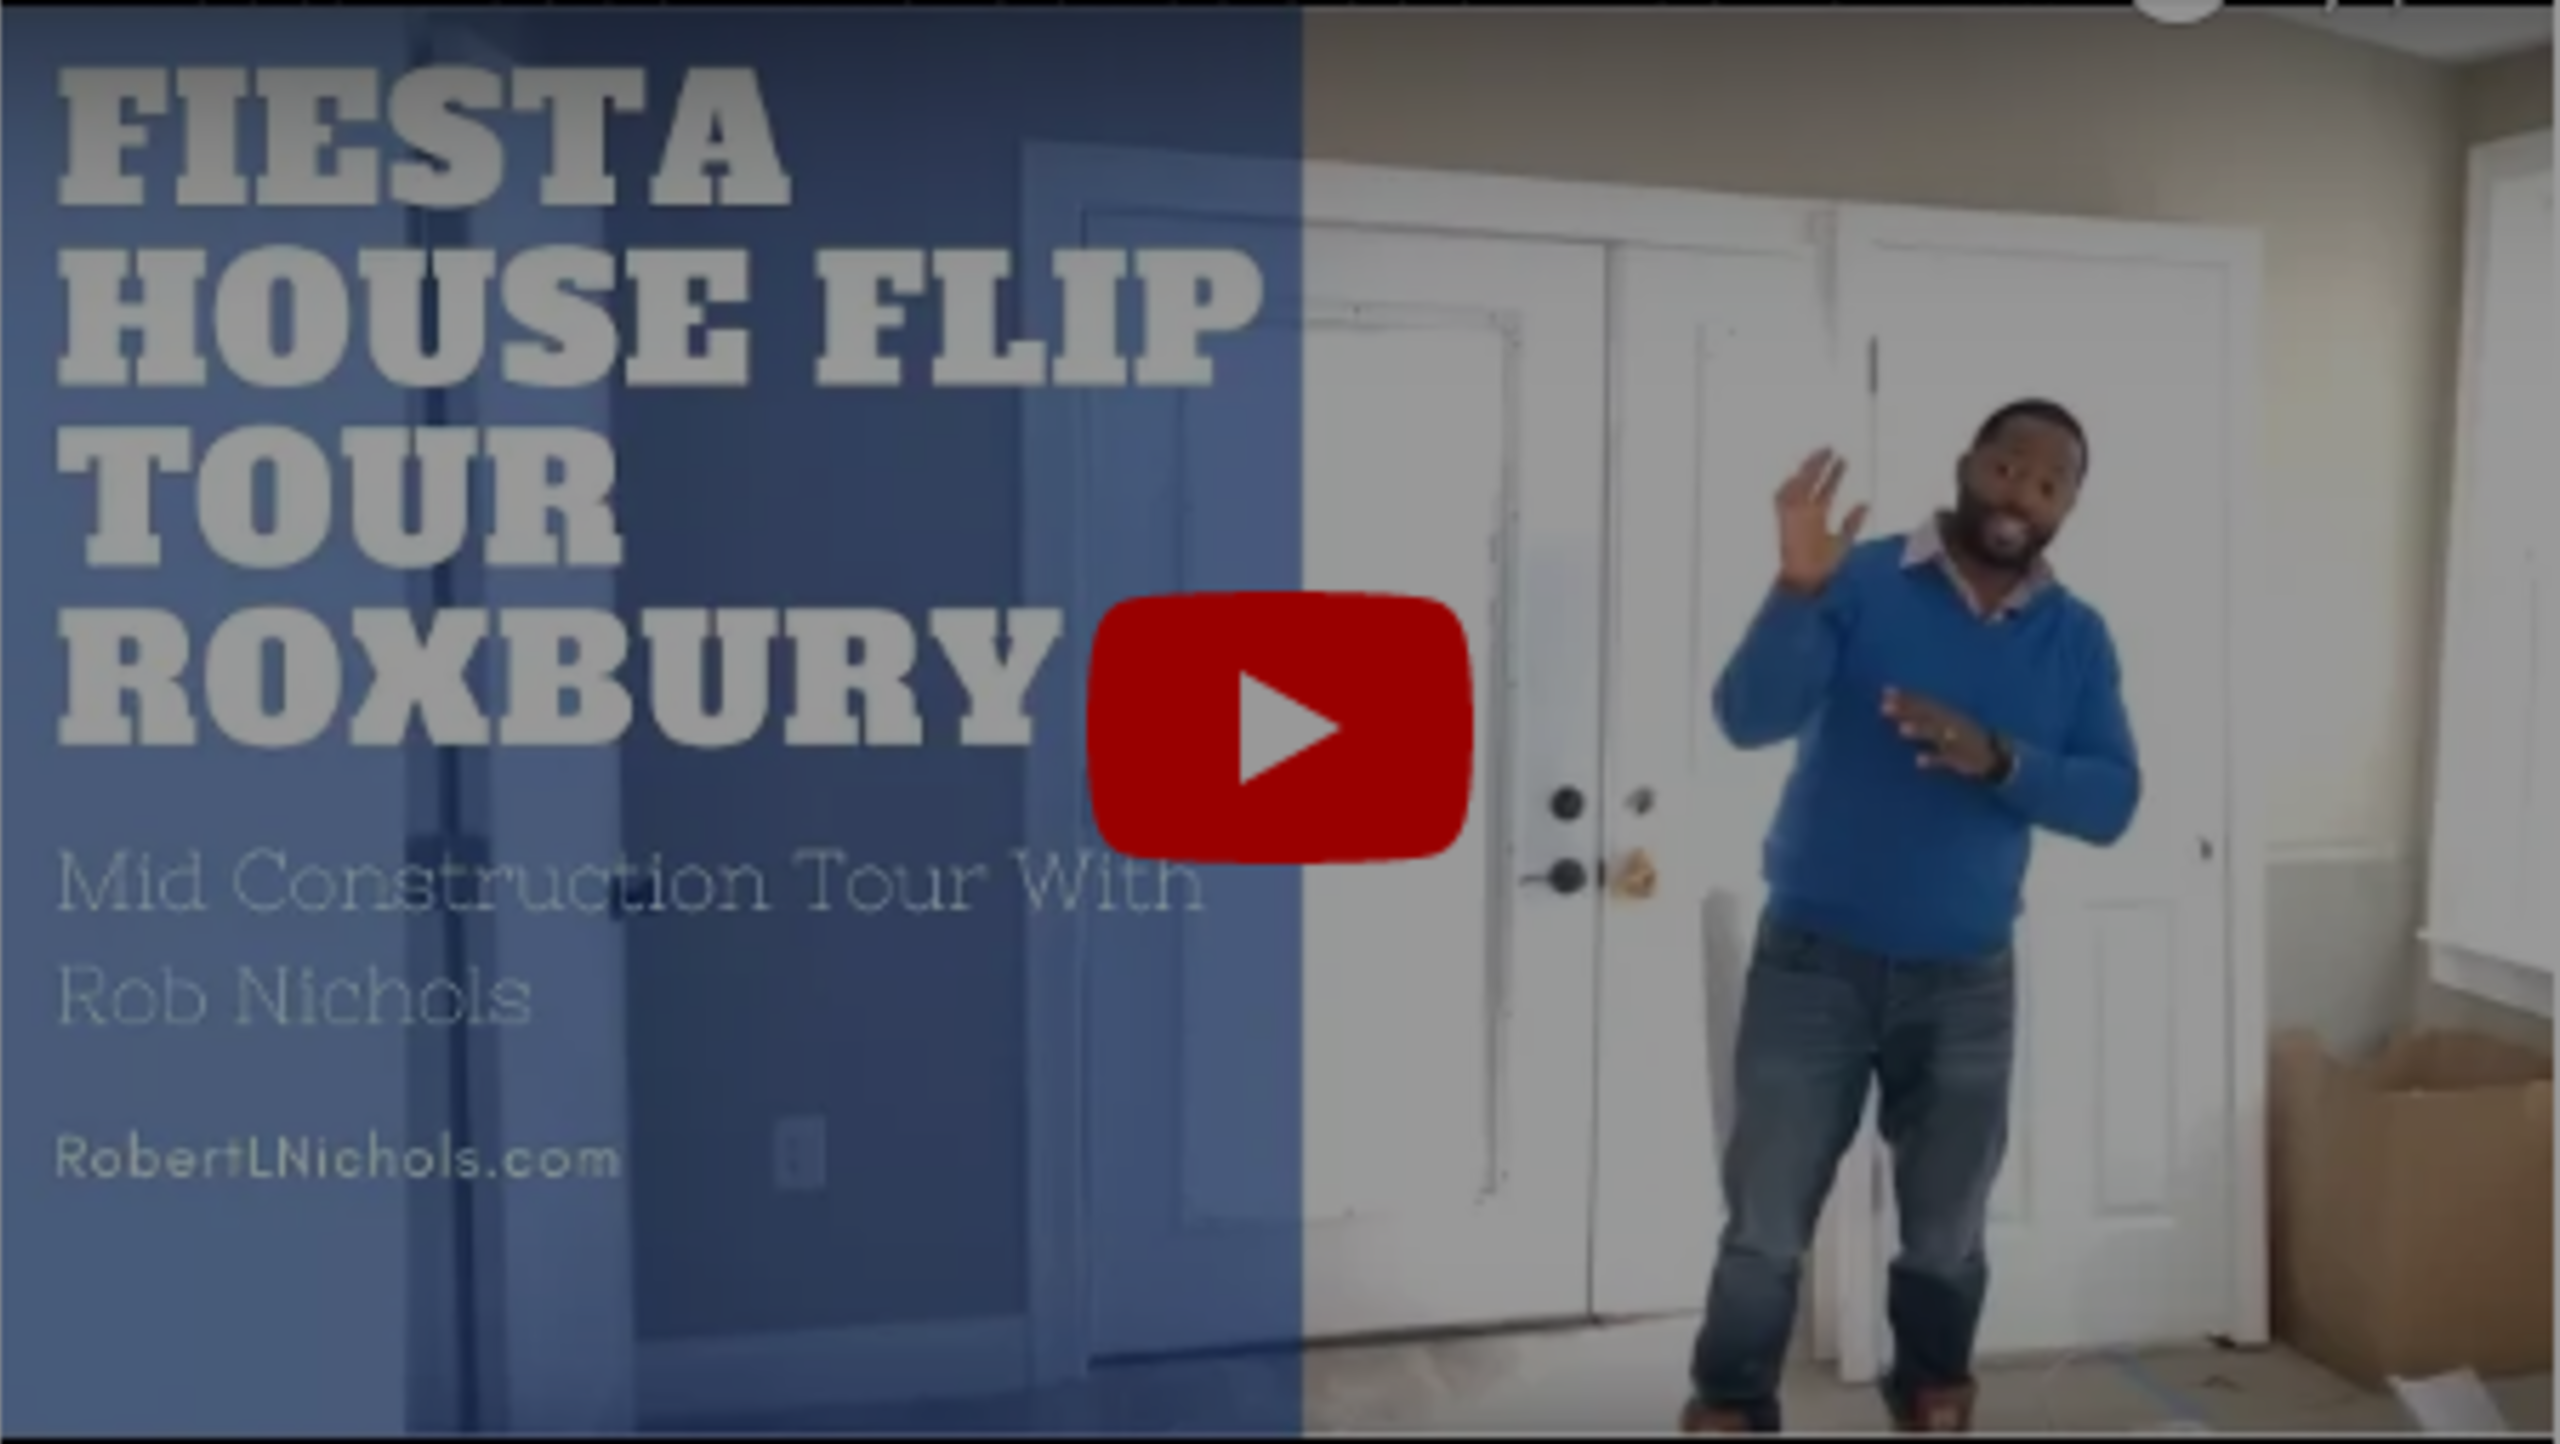 Fiesta House – Mid Construction Tour of A Fine Roxbury Home